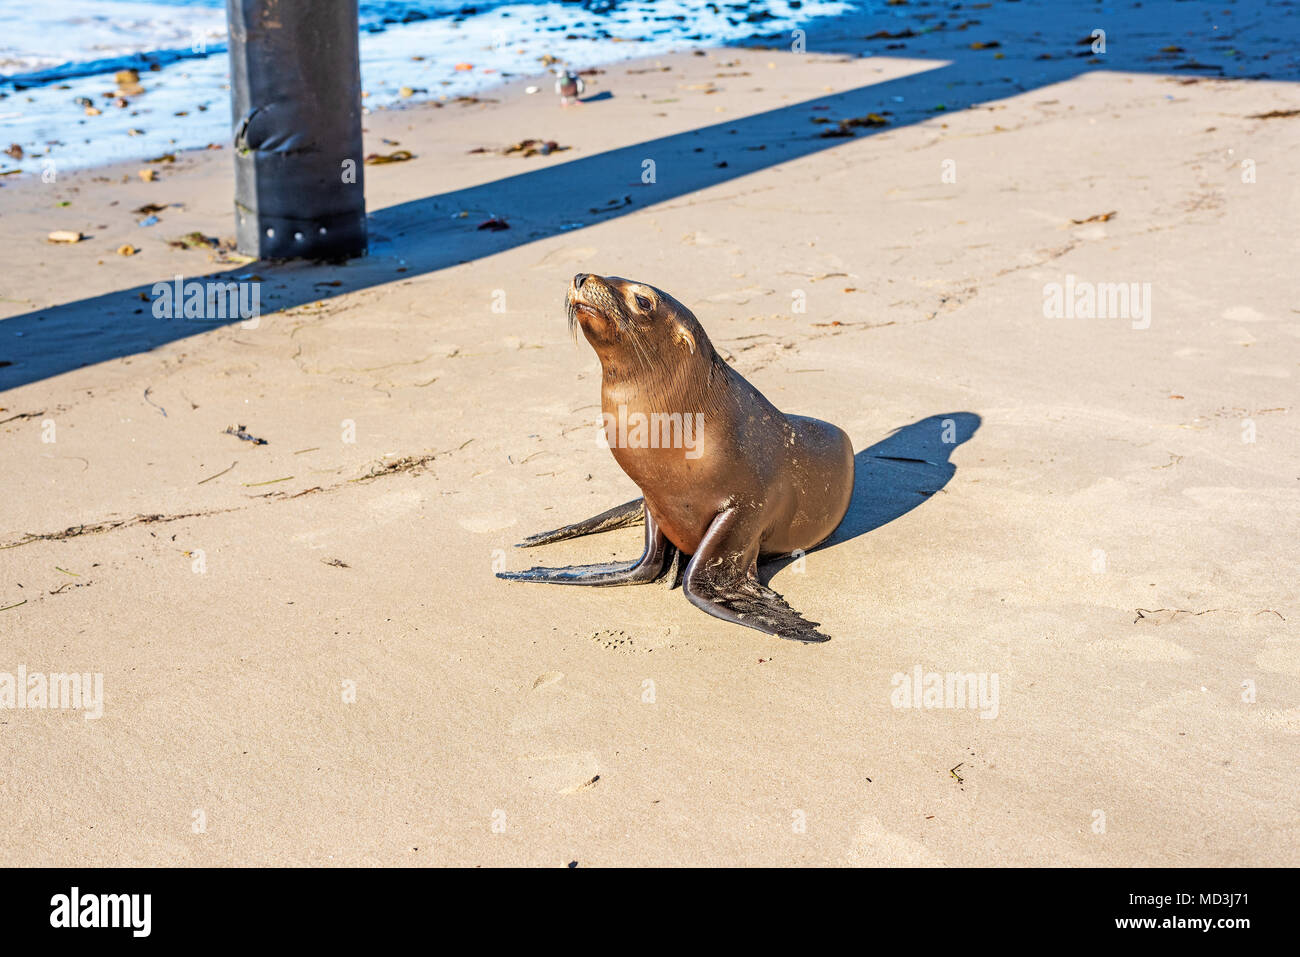 Baby Seal Separated From Mother Arrives On Goleta State Beach, United States Credit: RJ Styles/Alamy Live News - Stock Image